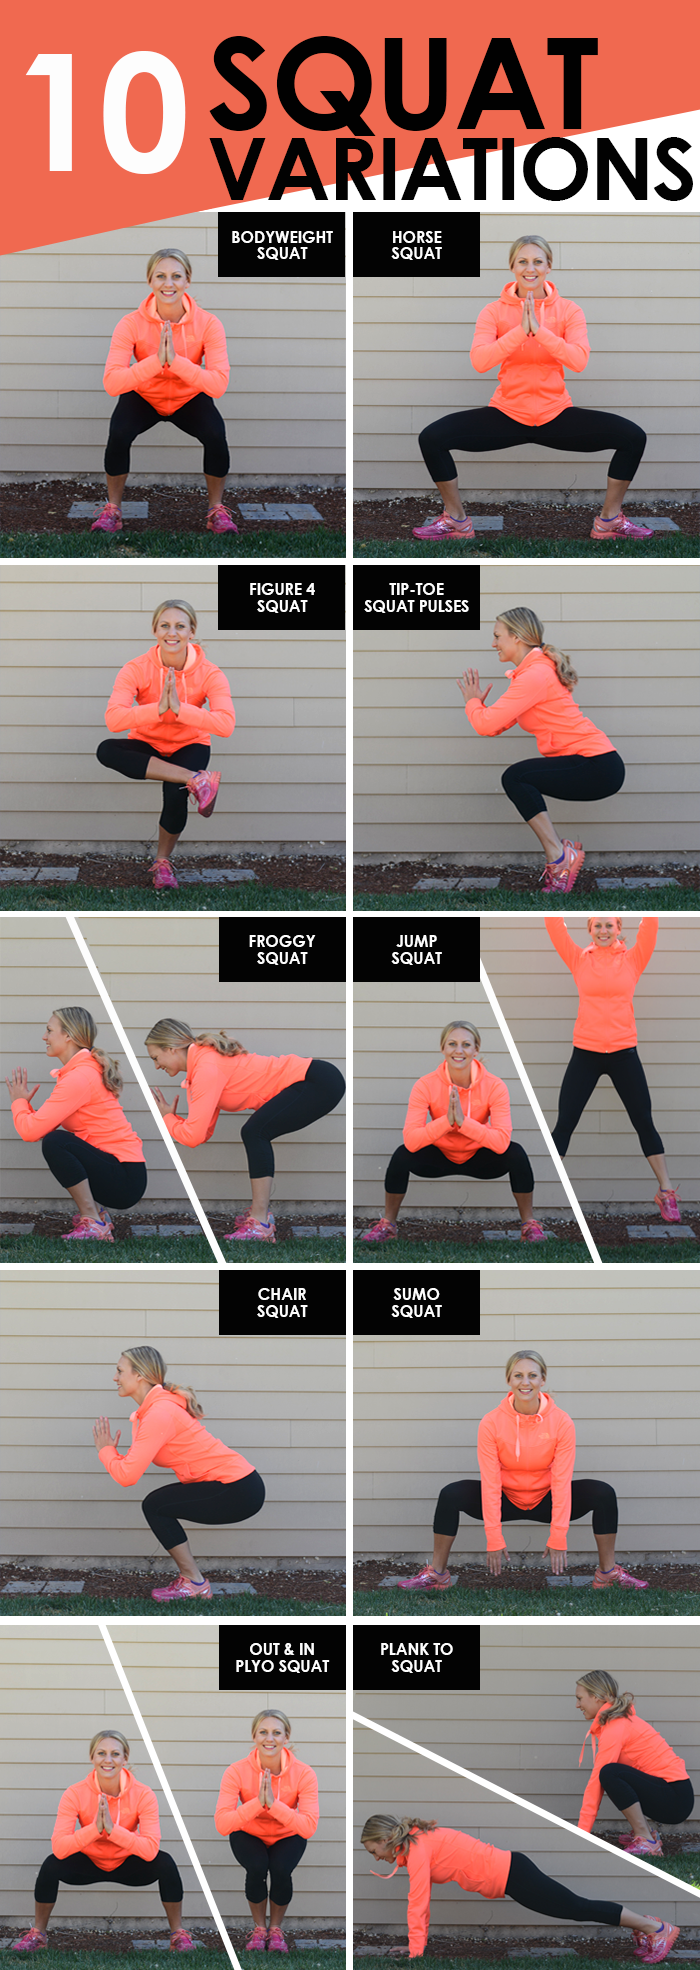 10 Squat Variations by Fit Foodie Finds. Click the title of each variation to visit each page!